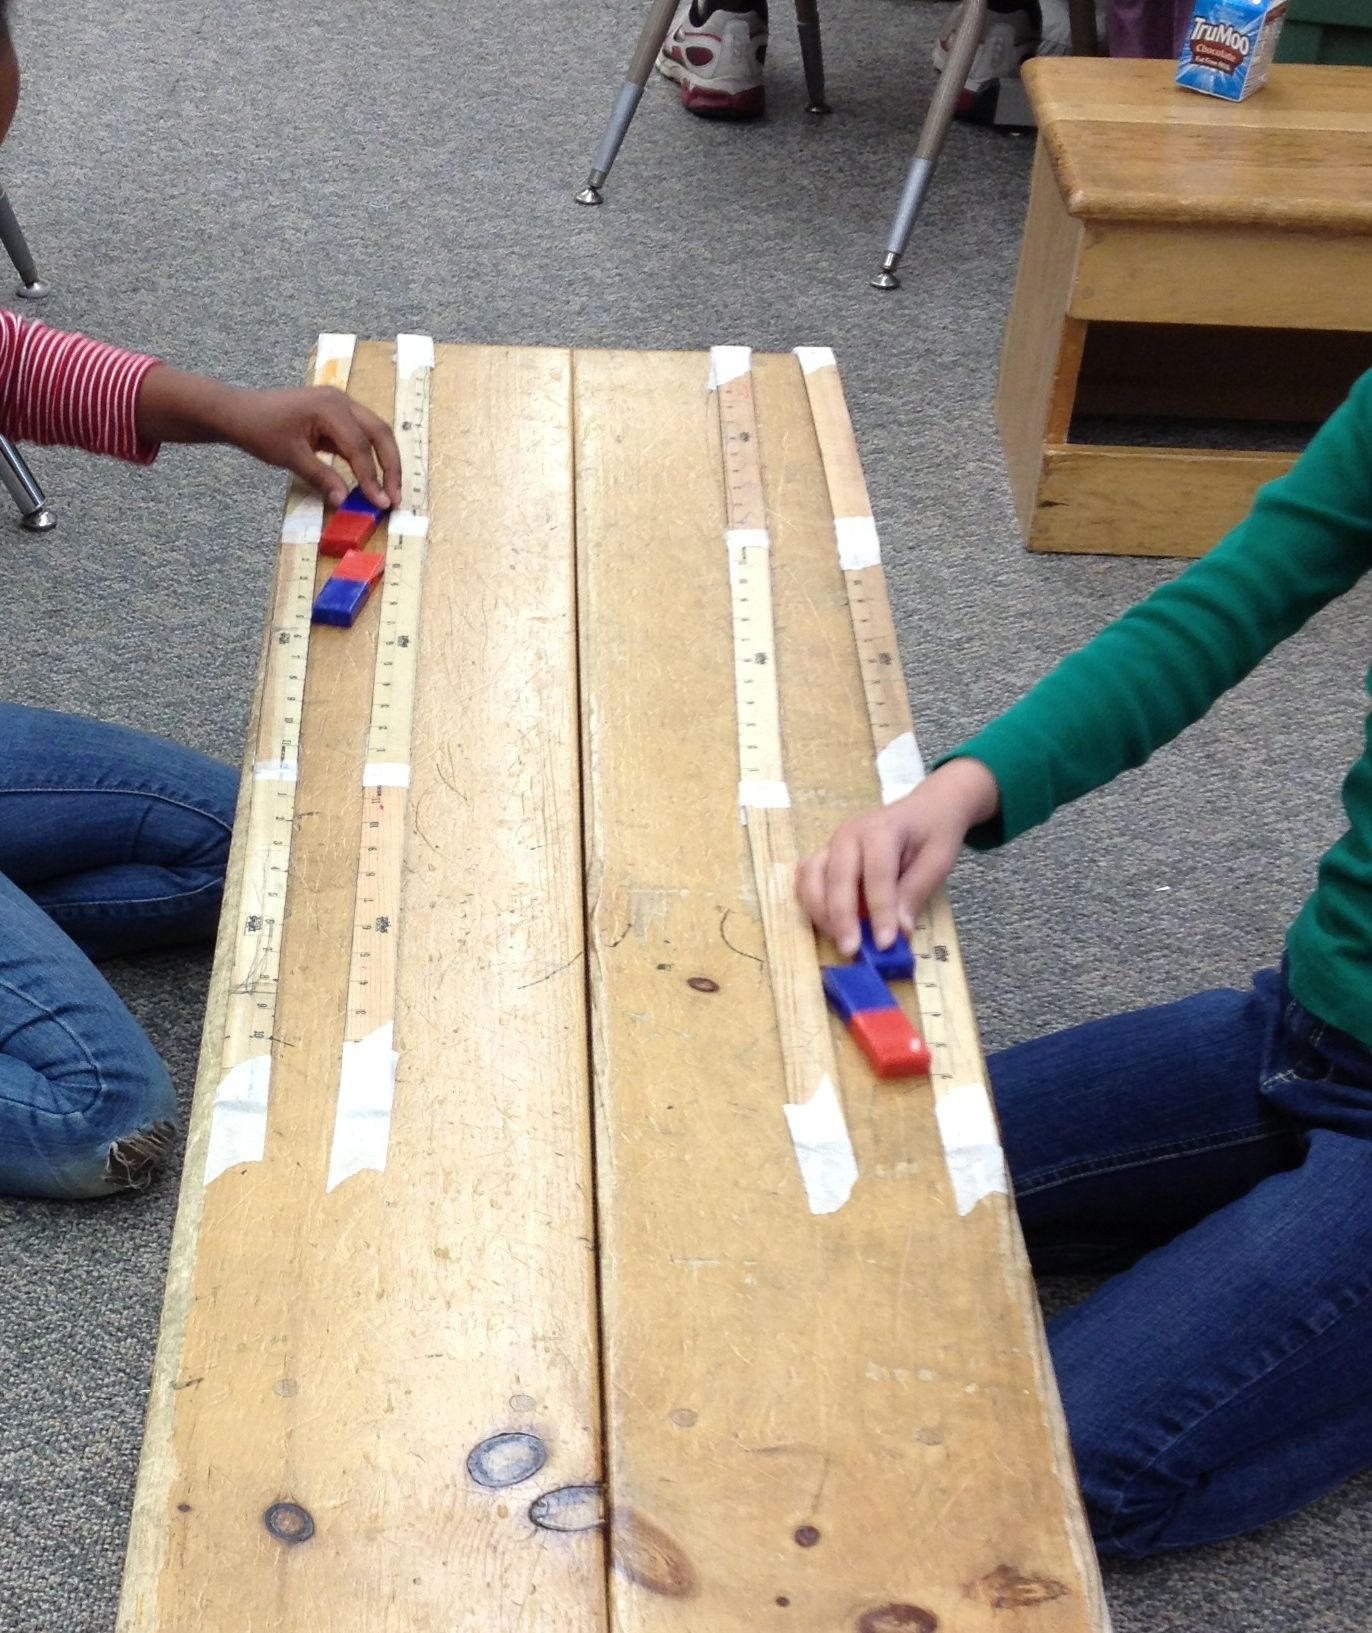 Magnet Repel Racing With Rulers Along A Bench